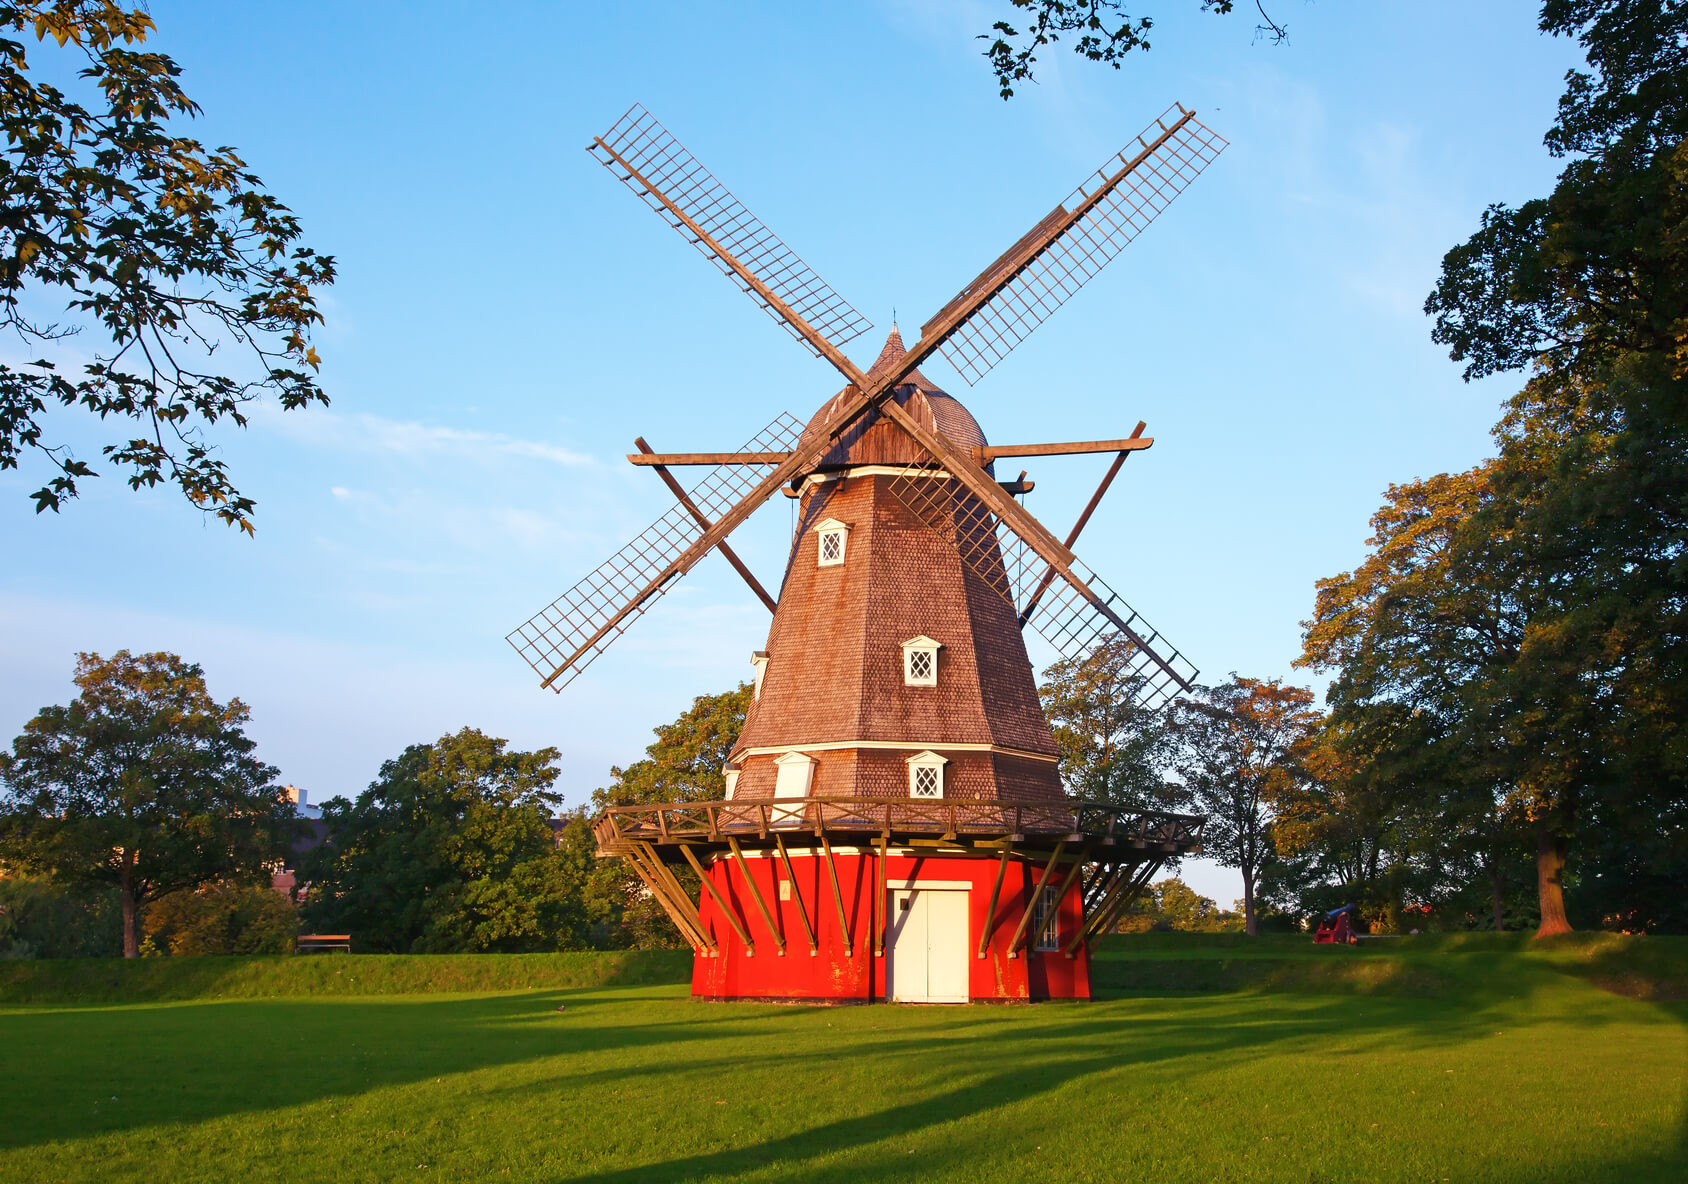 Adelaide, Australia to Copenhagen, Denmark for only $993 AUD roundtrip (Feb-Mar dates)